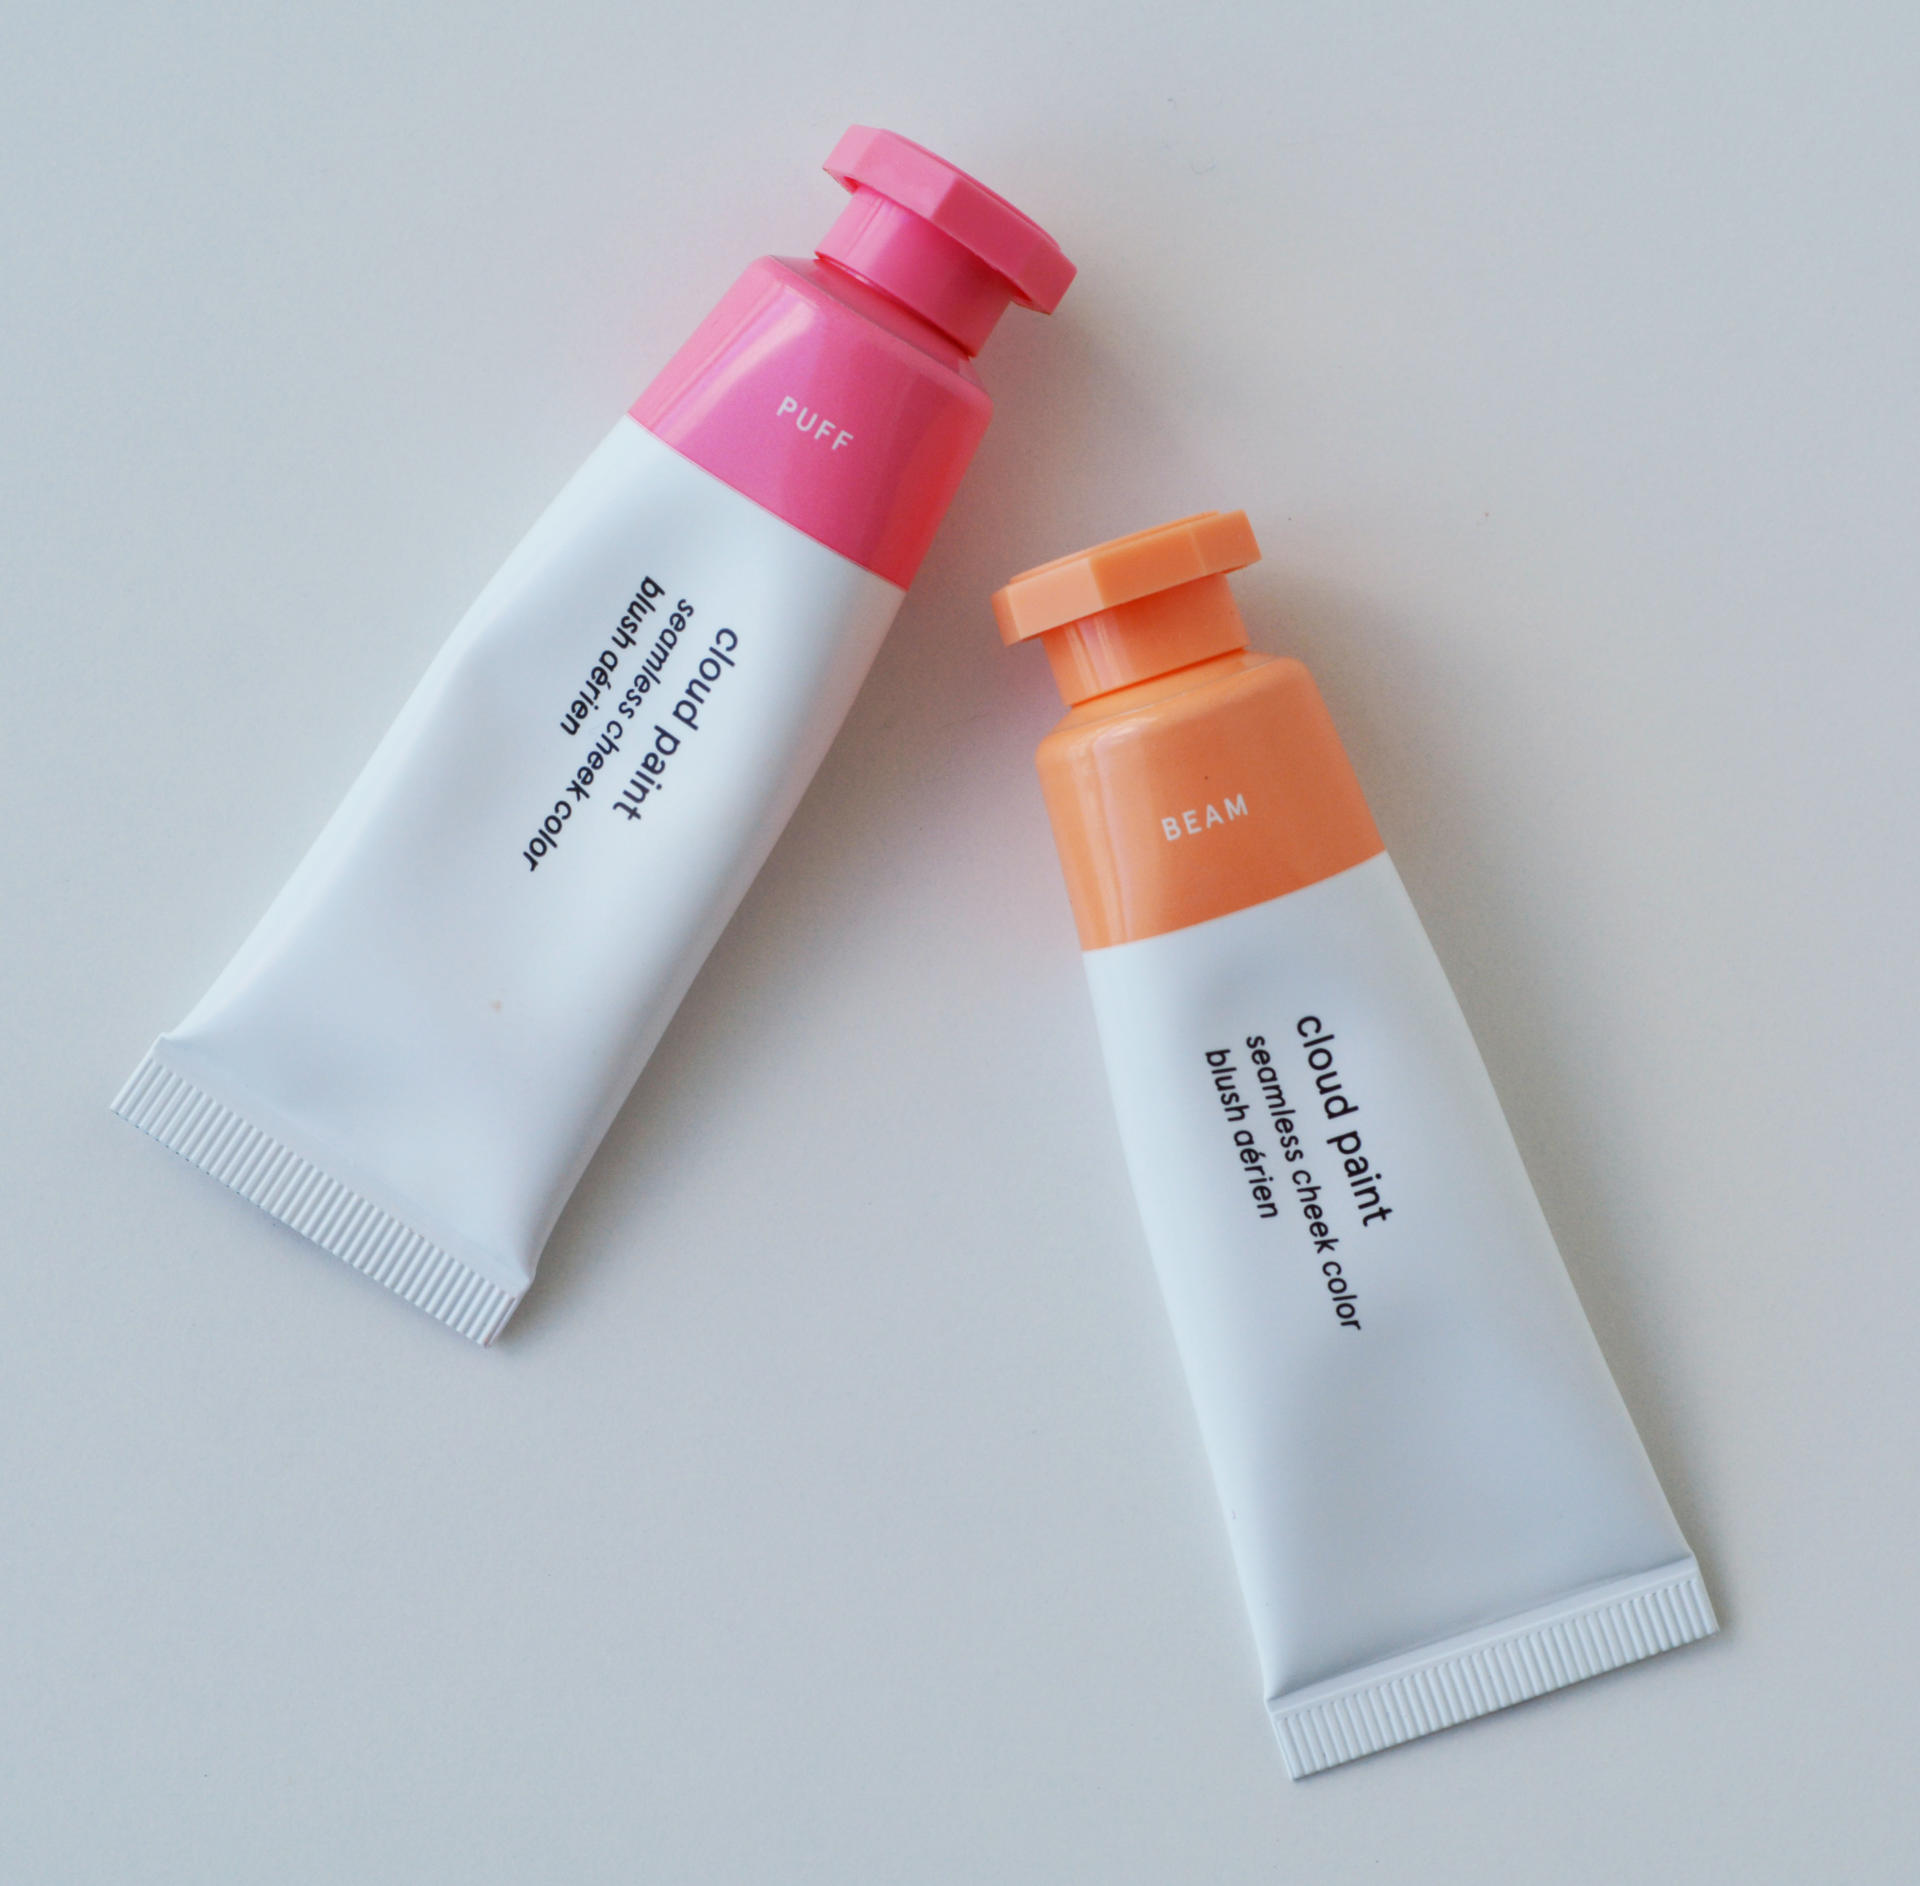 Glossier Cloud Paints Puff and Bean